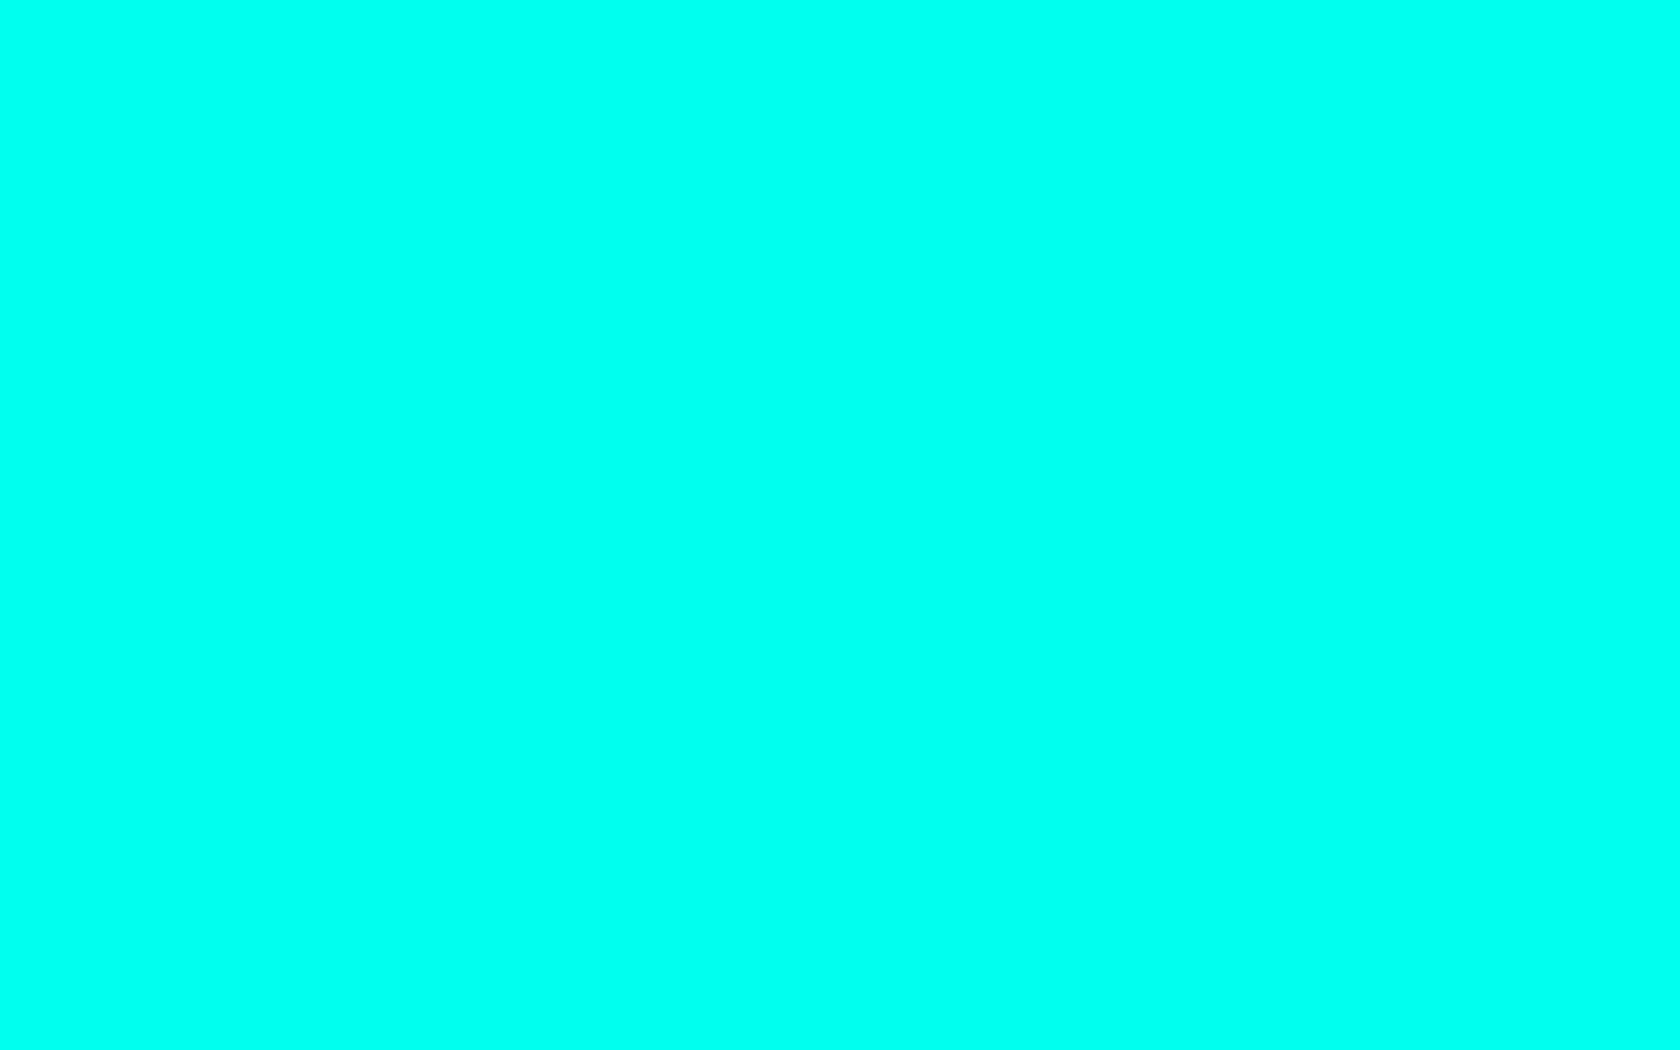 1680x1050 Turquoise Blue Solid Color Background